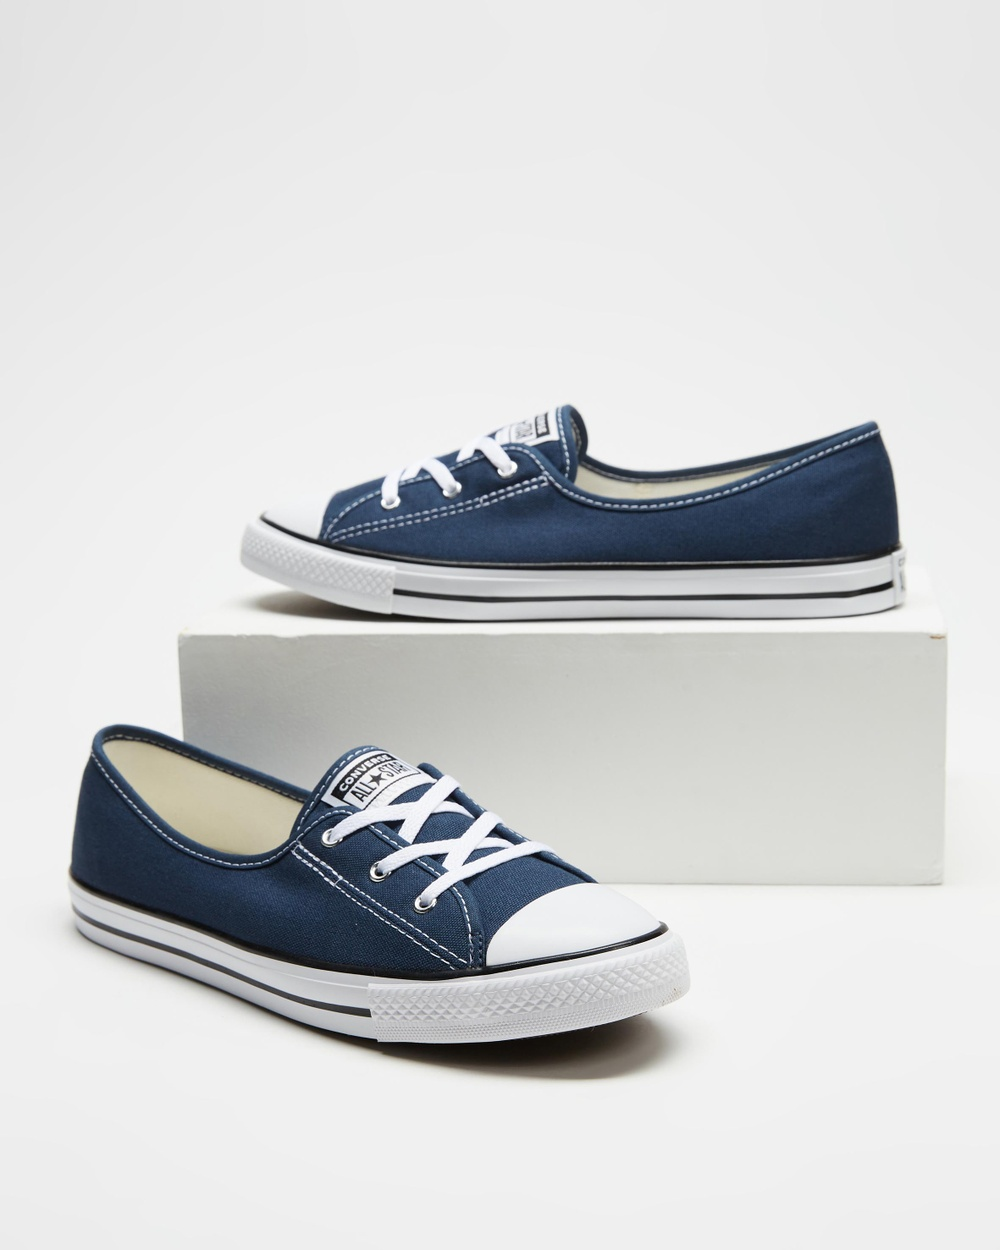 Converse Chuck Taylor All Star Ballet Lace Women's Slip-On Sneakers Navy, White & Black